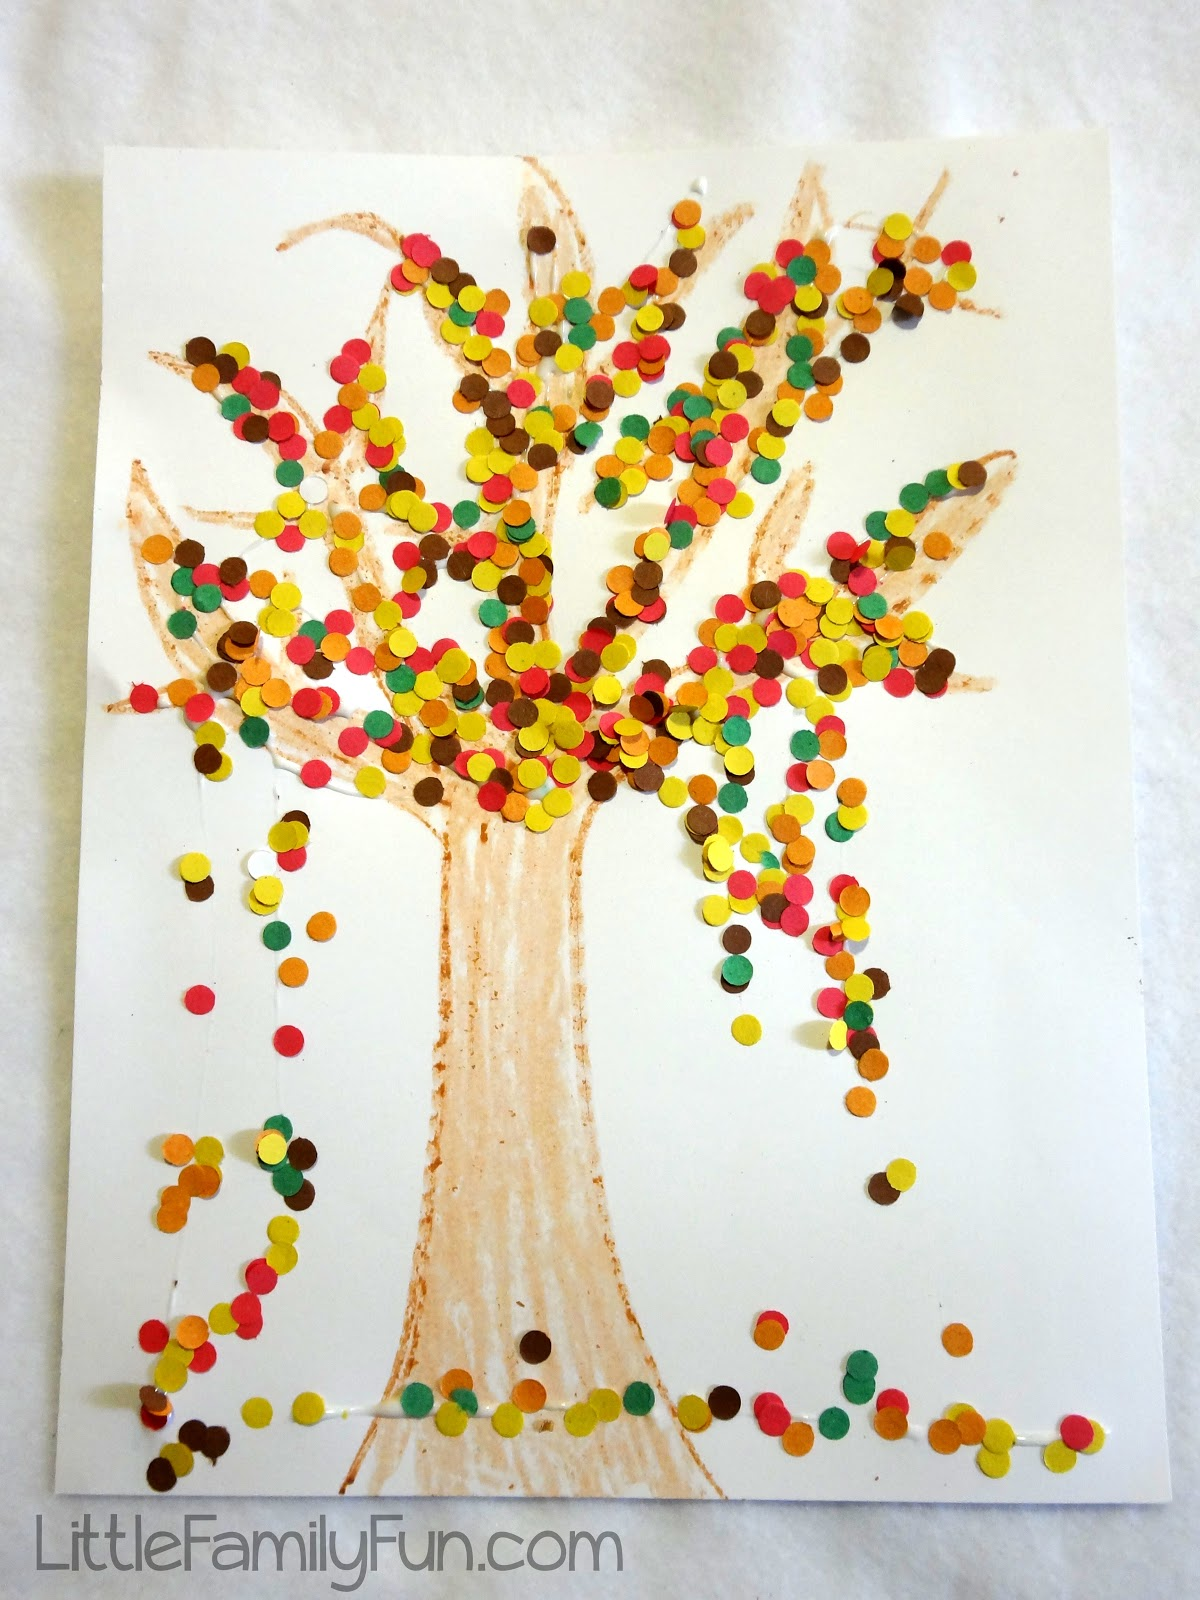 """Pop some popcorn, shake it in some paint, and you've got yourself some colourful """"leaves"""" for this adorable Popcorn Fall Tree Craft. This is a fun and easy fall craft for toddlers and preschoolers and great for both large-motor and fine-motor skills."""